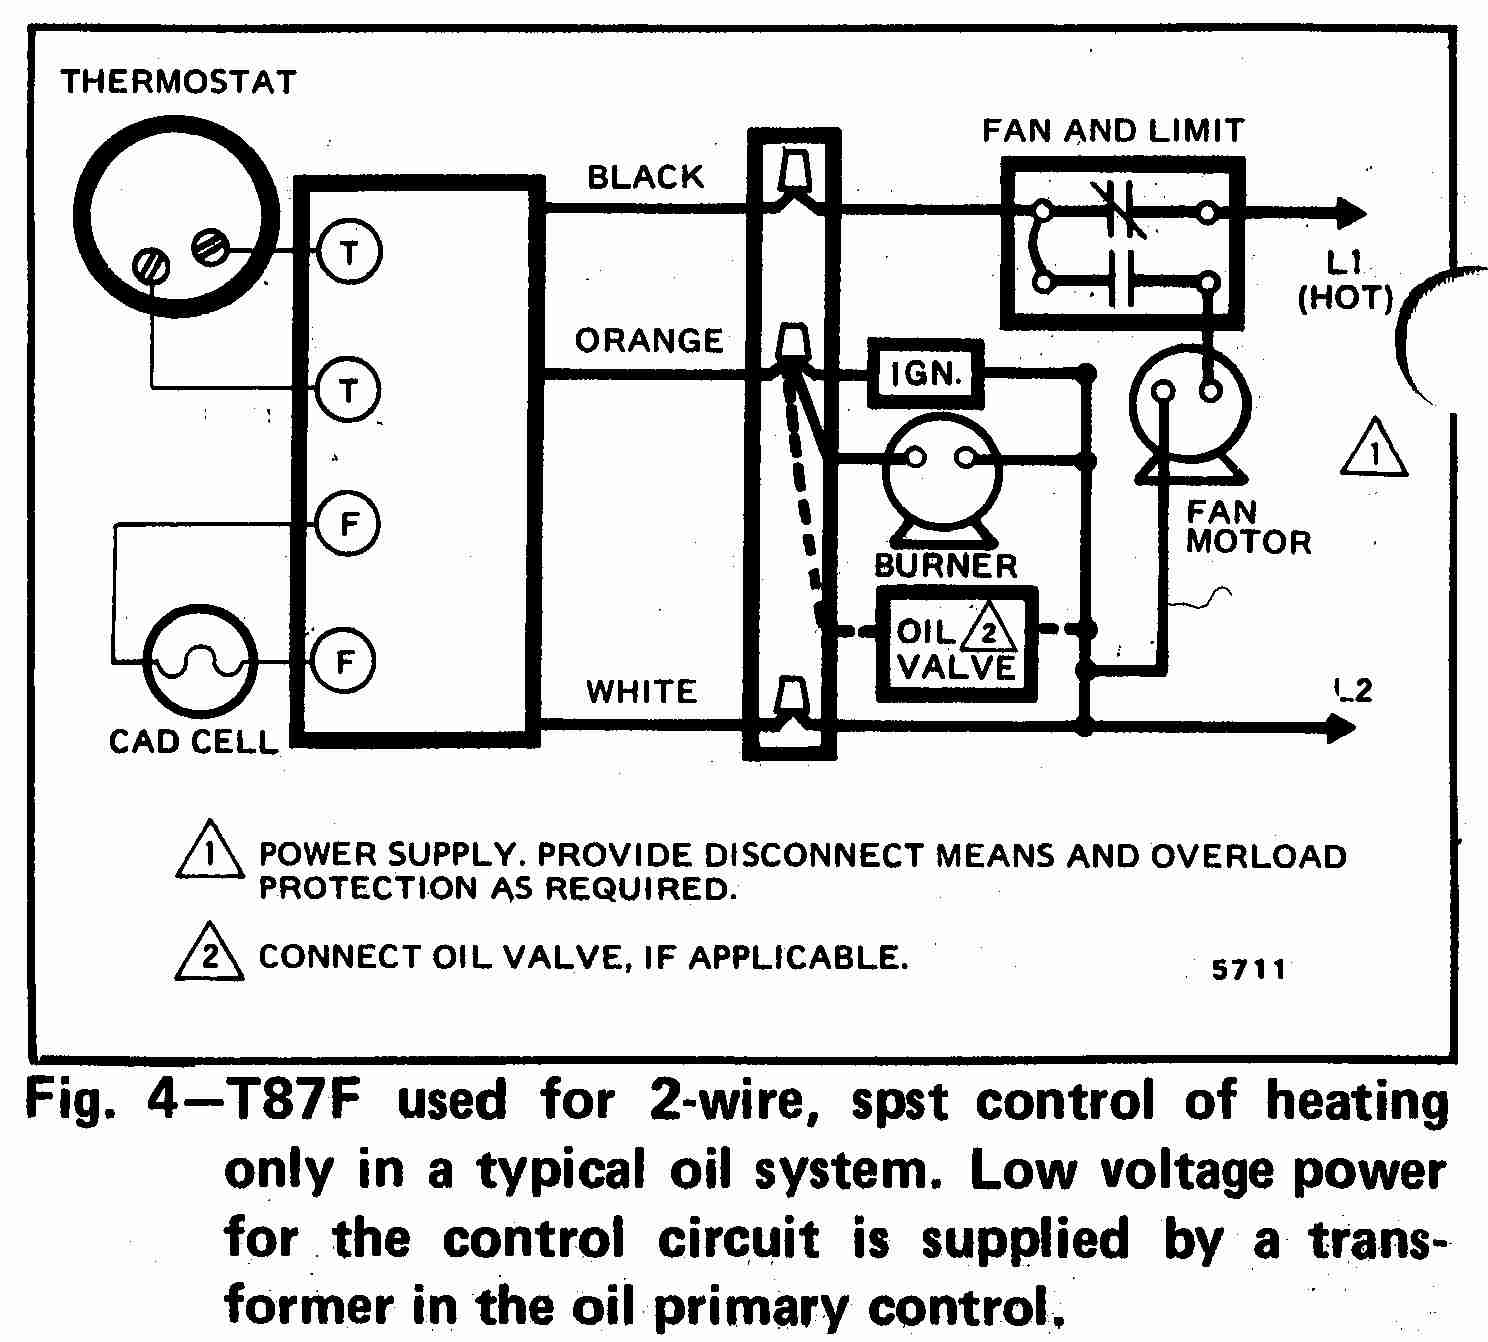 TT_T87F_0002_2W_DJF wiring diagram for heating system dryer wiring diagram \u2022 free  at gsmx.co